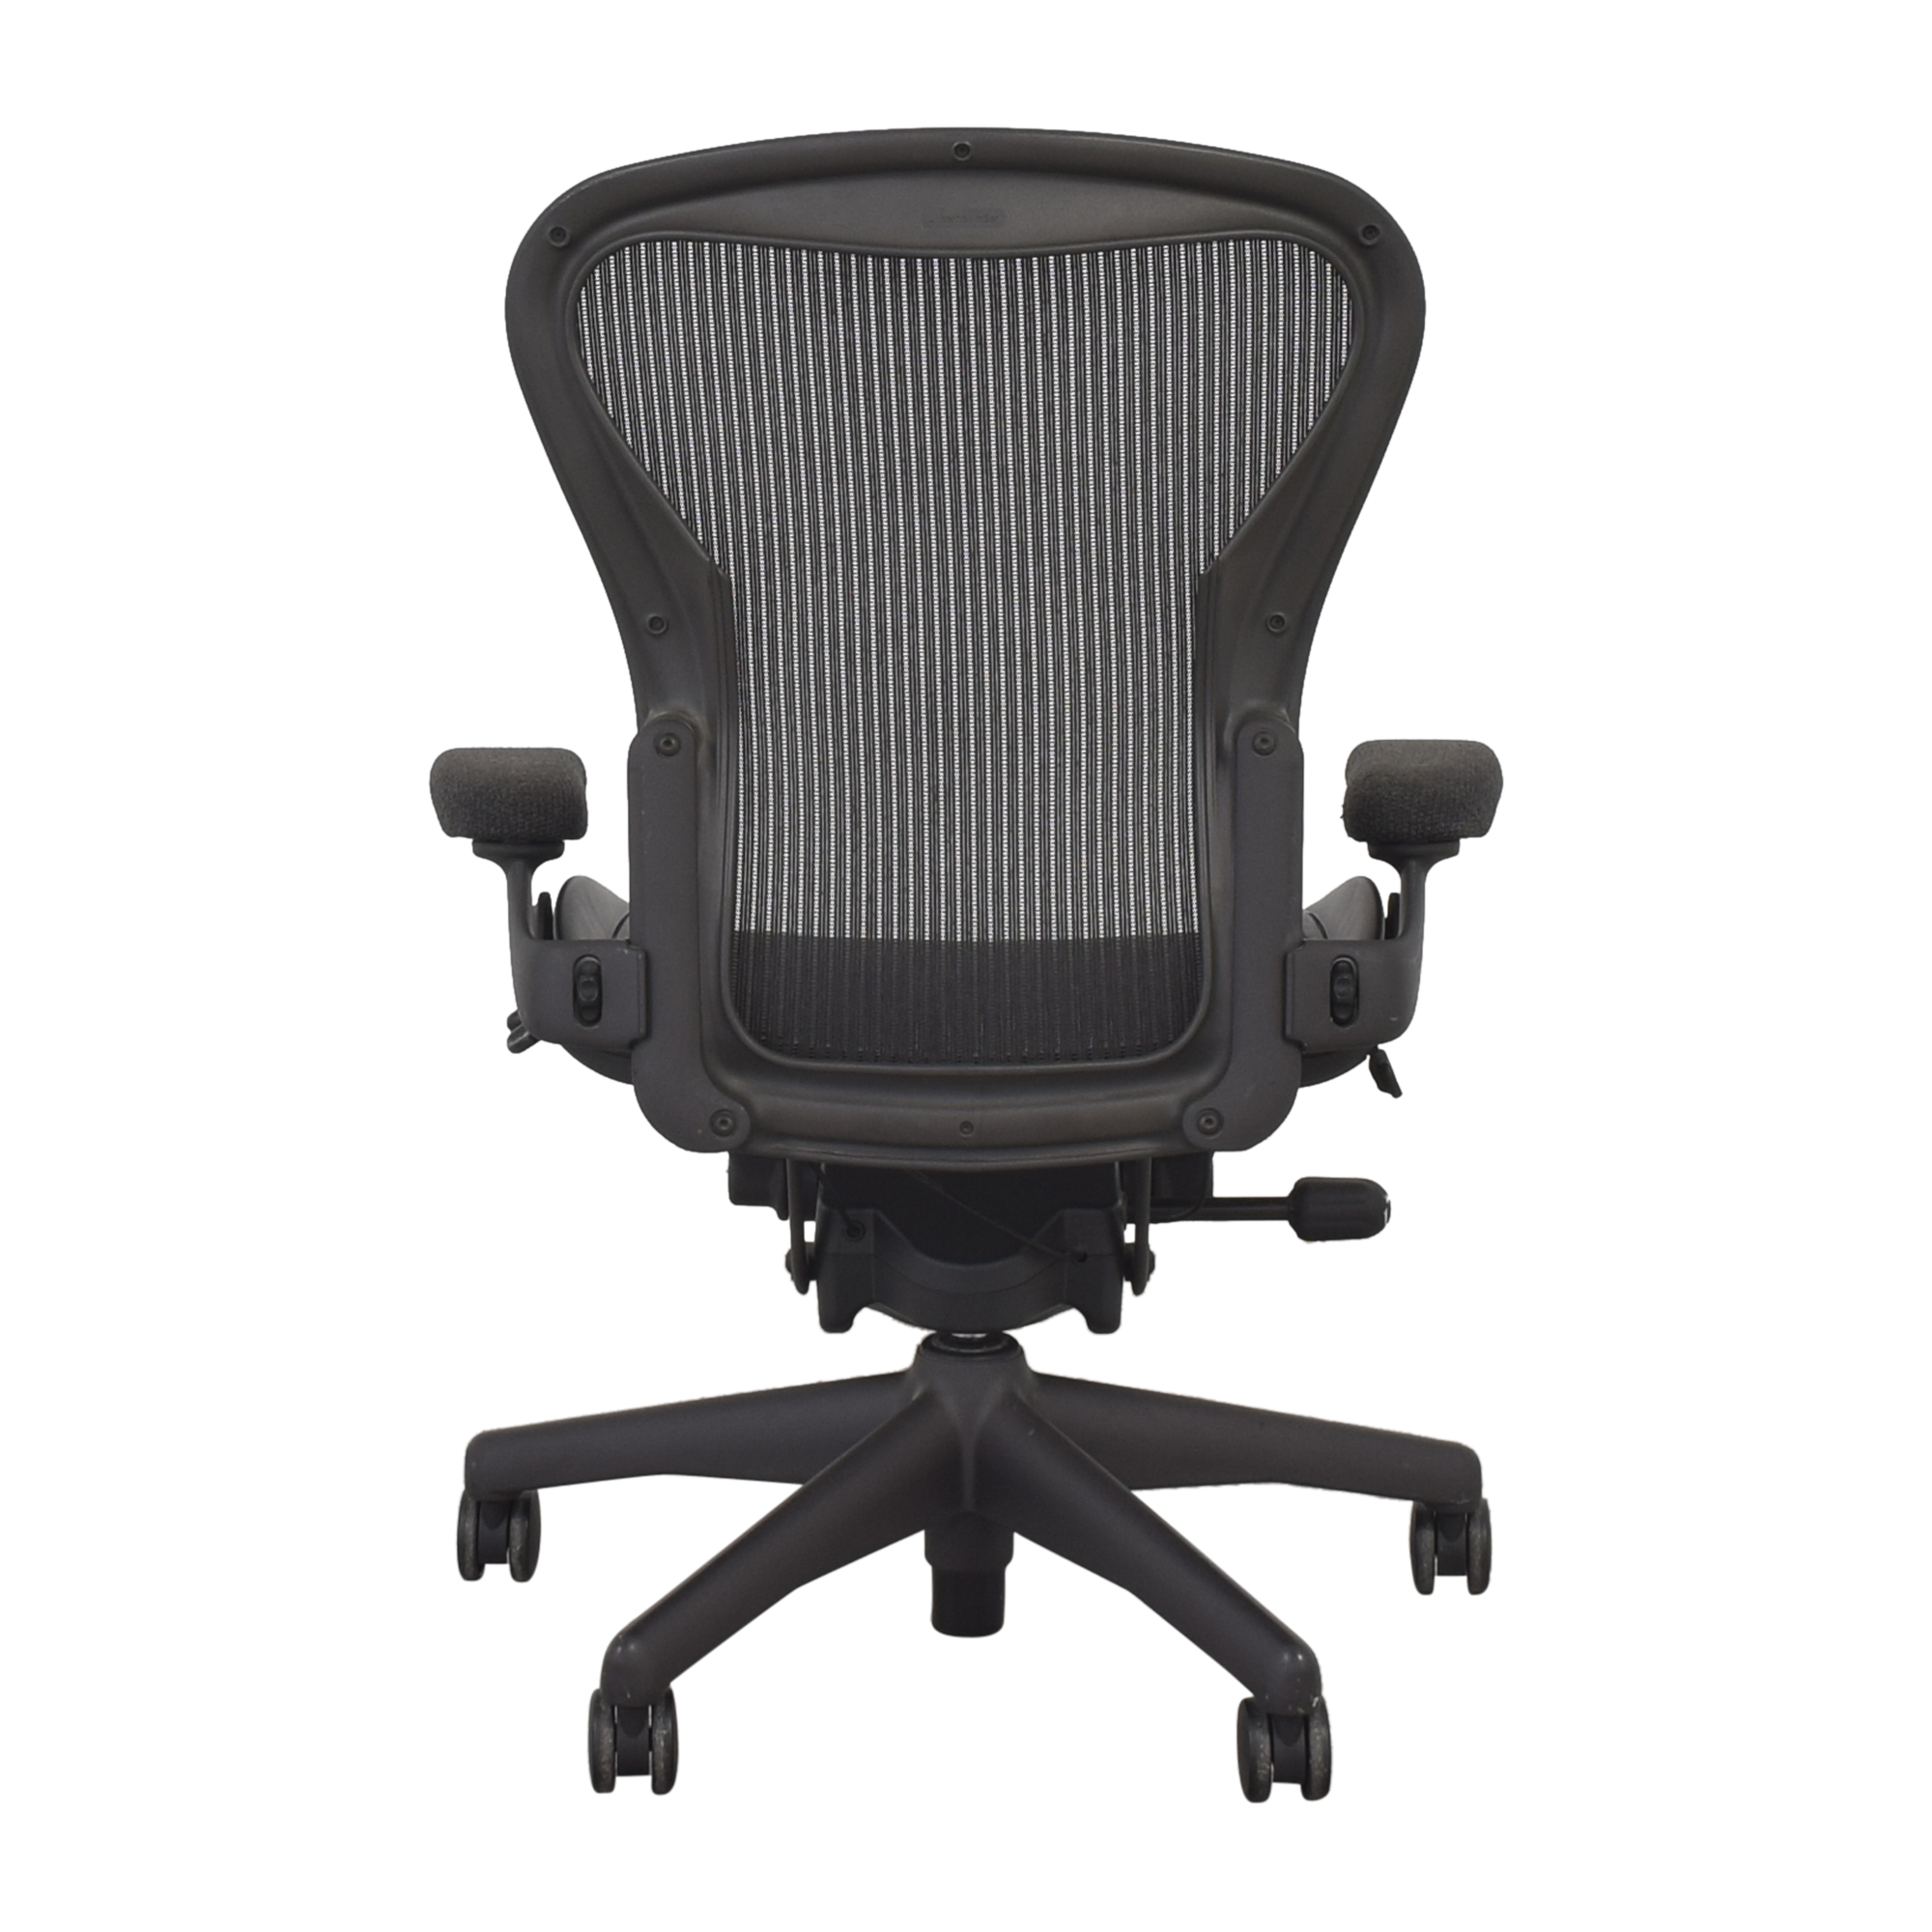 Herman Miller Herman MIller Aeron Office Chair Chairs